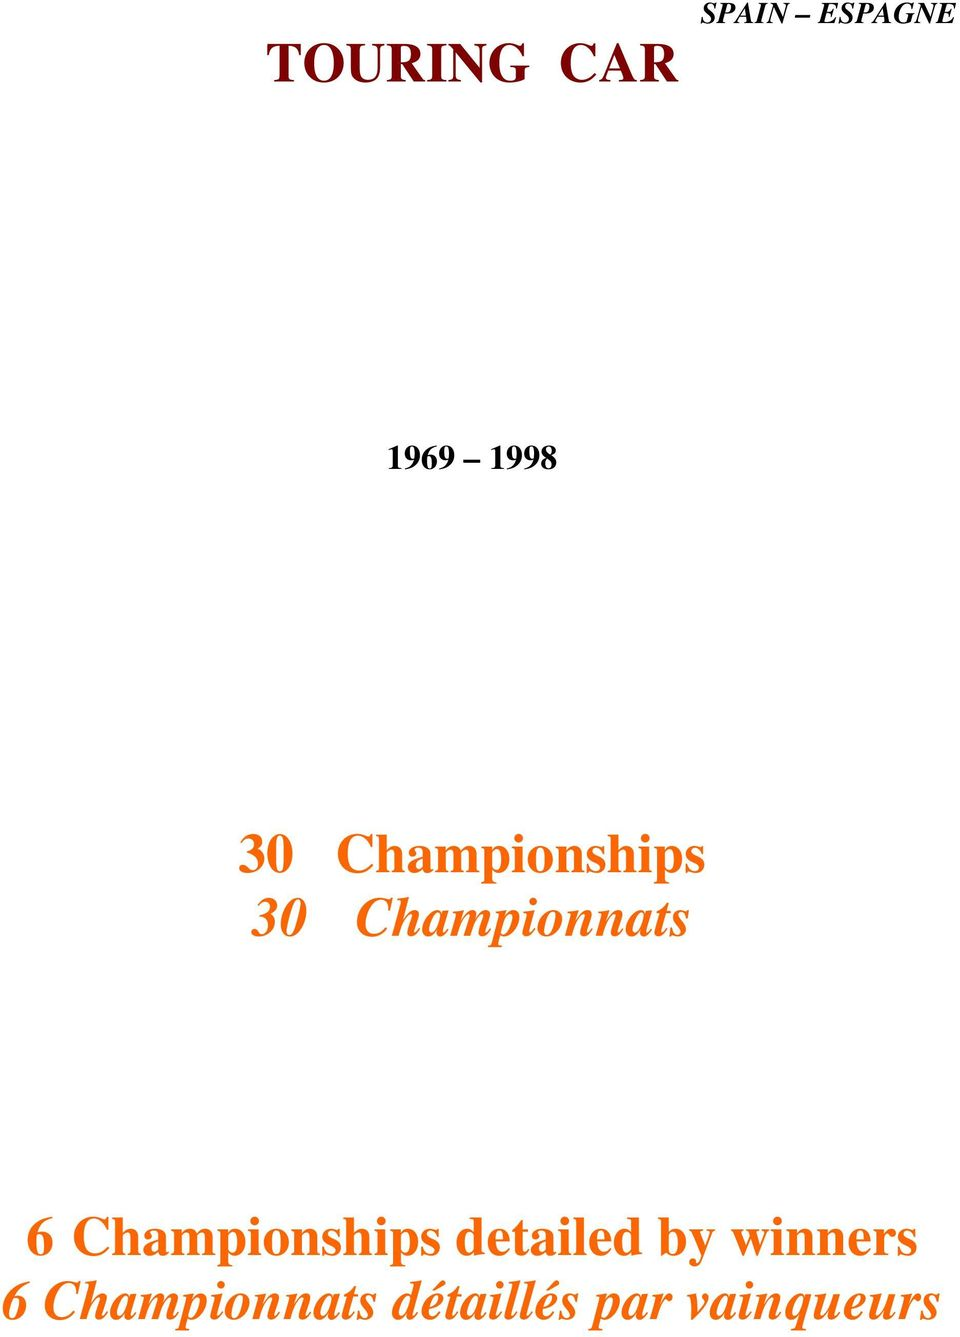 Championships detailed by winners 6